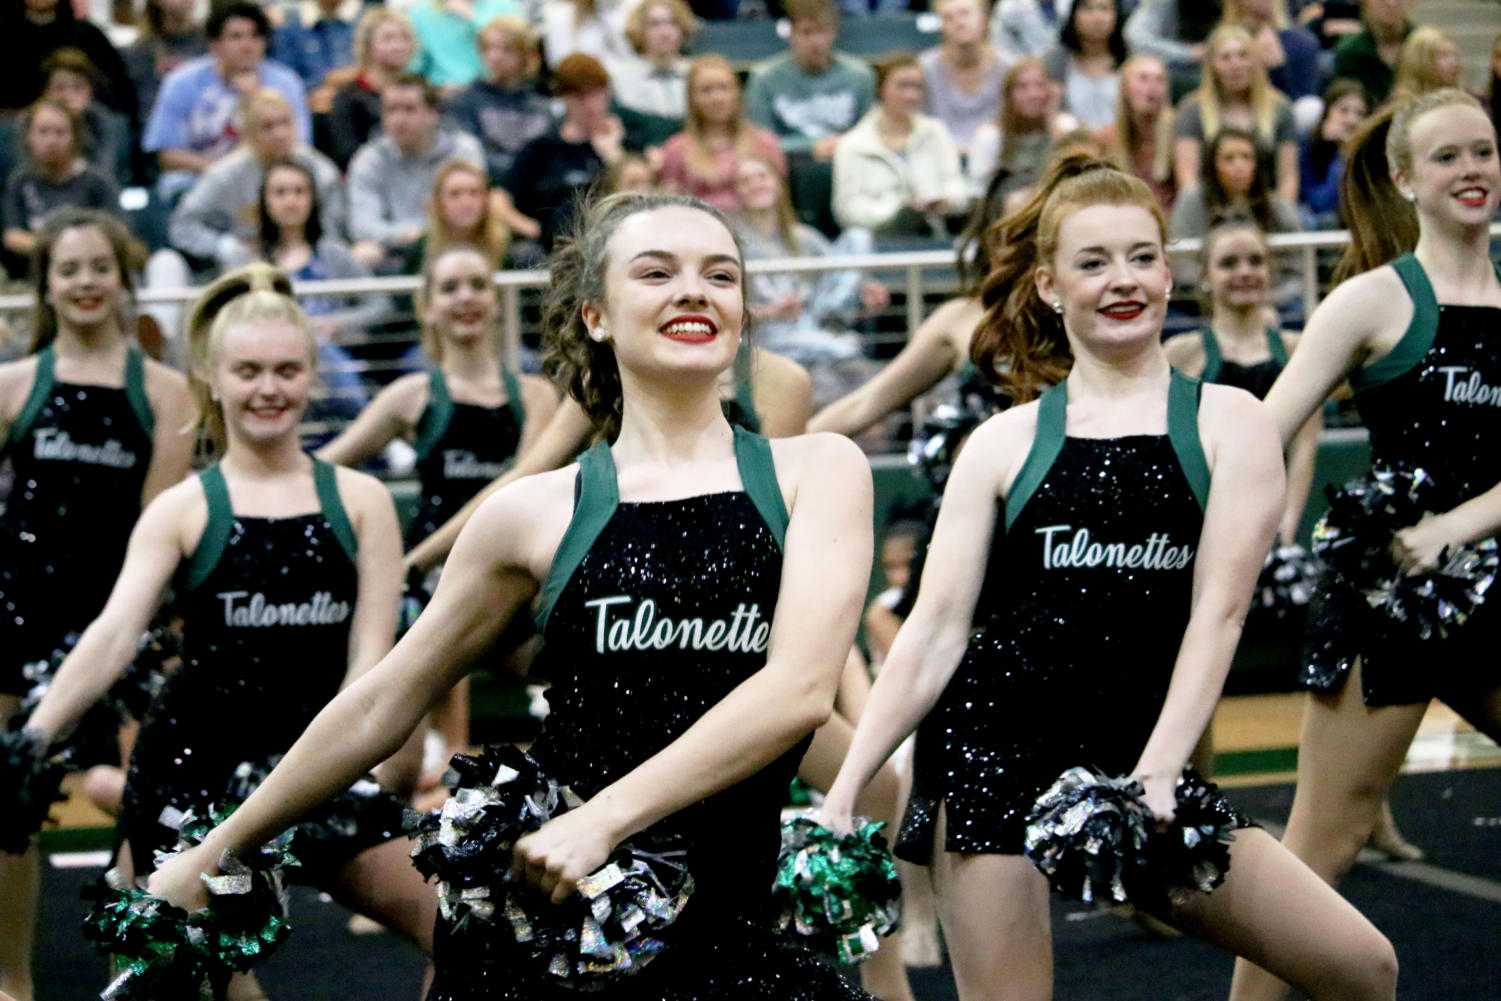 The Talonettes dance at each pep rally and sporting event. Tryouts for next year's team will take place in Gym 2, this Saturday. Dancers may also tryout to be a Talonette officer as well.